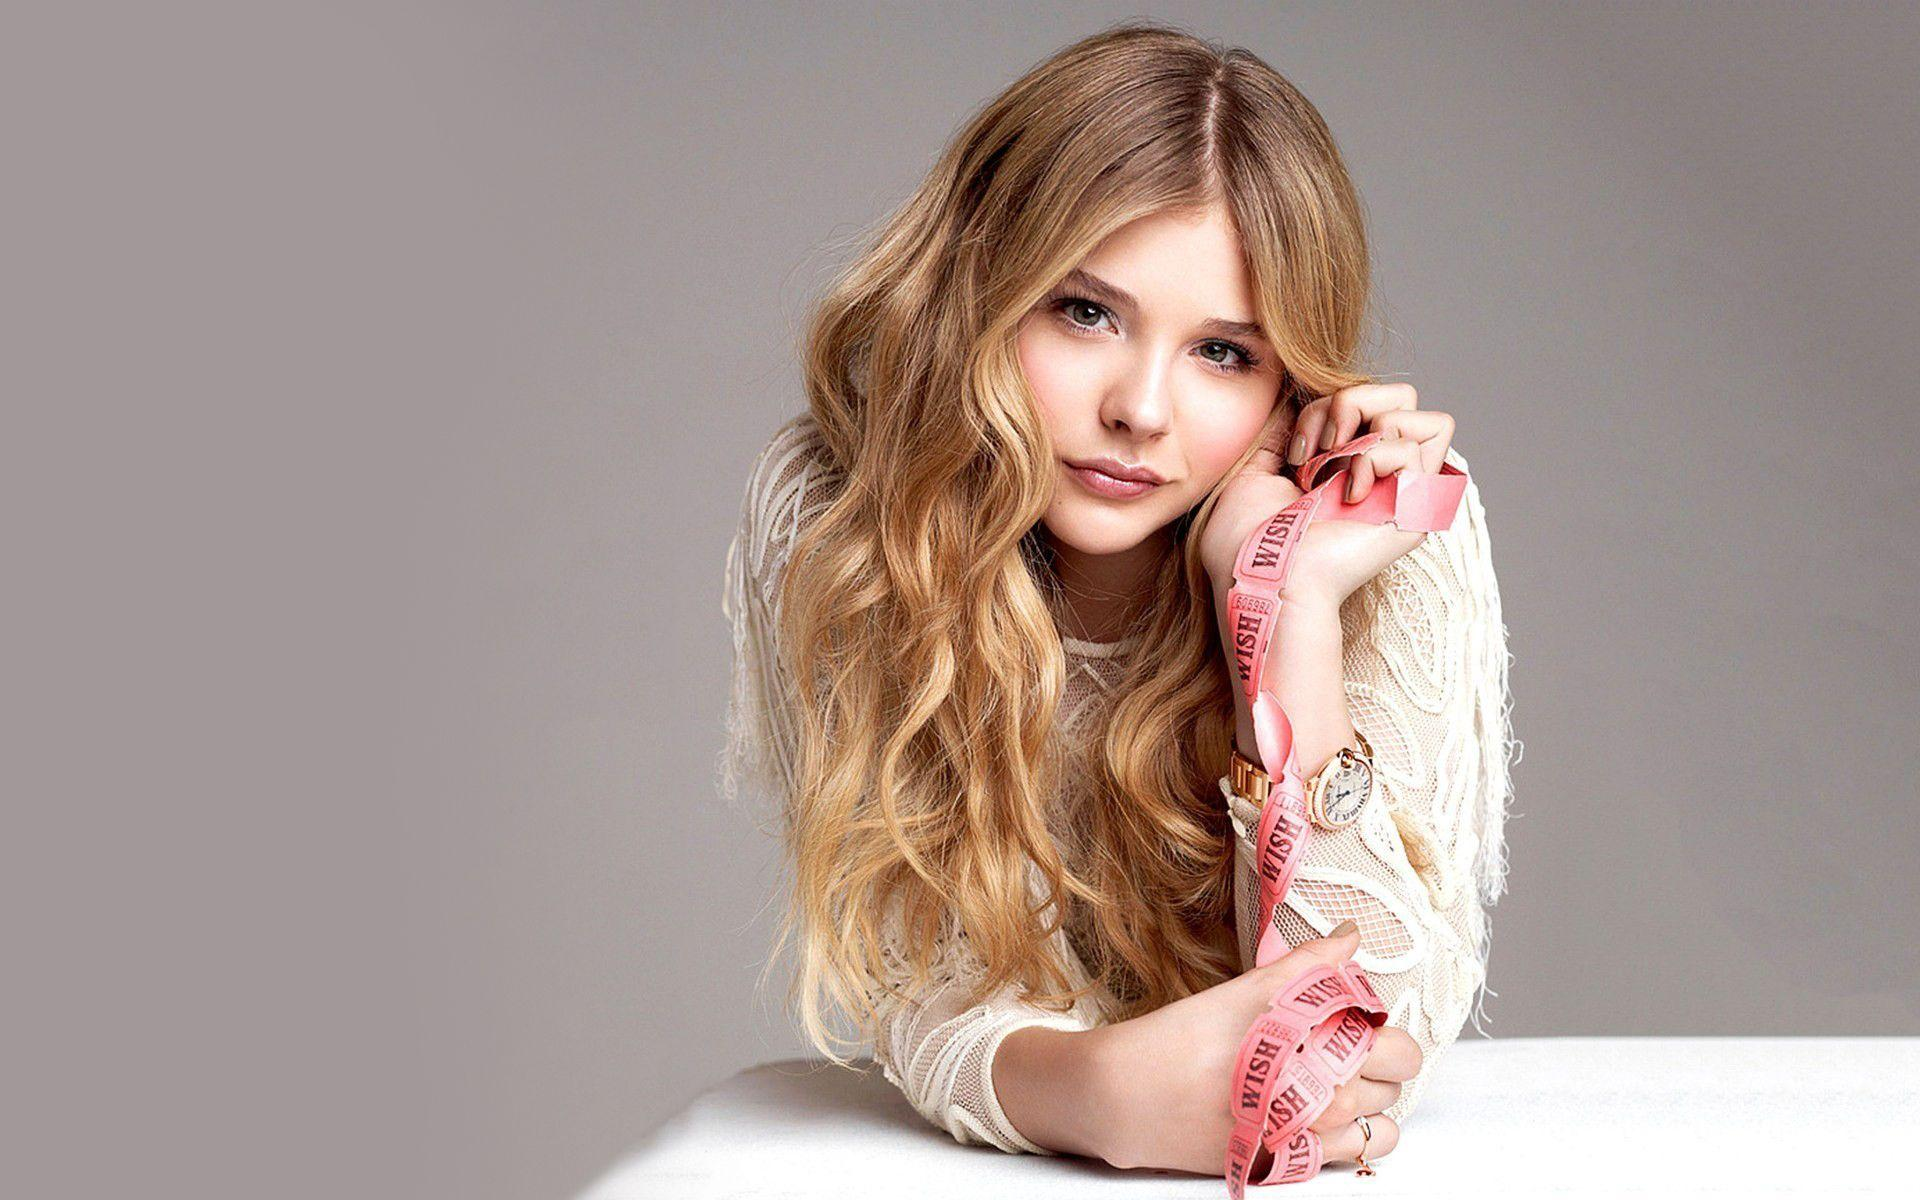 Celebrities Chloe Moretz 30 wallpapers